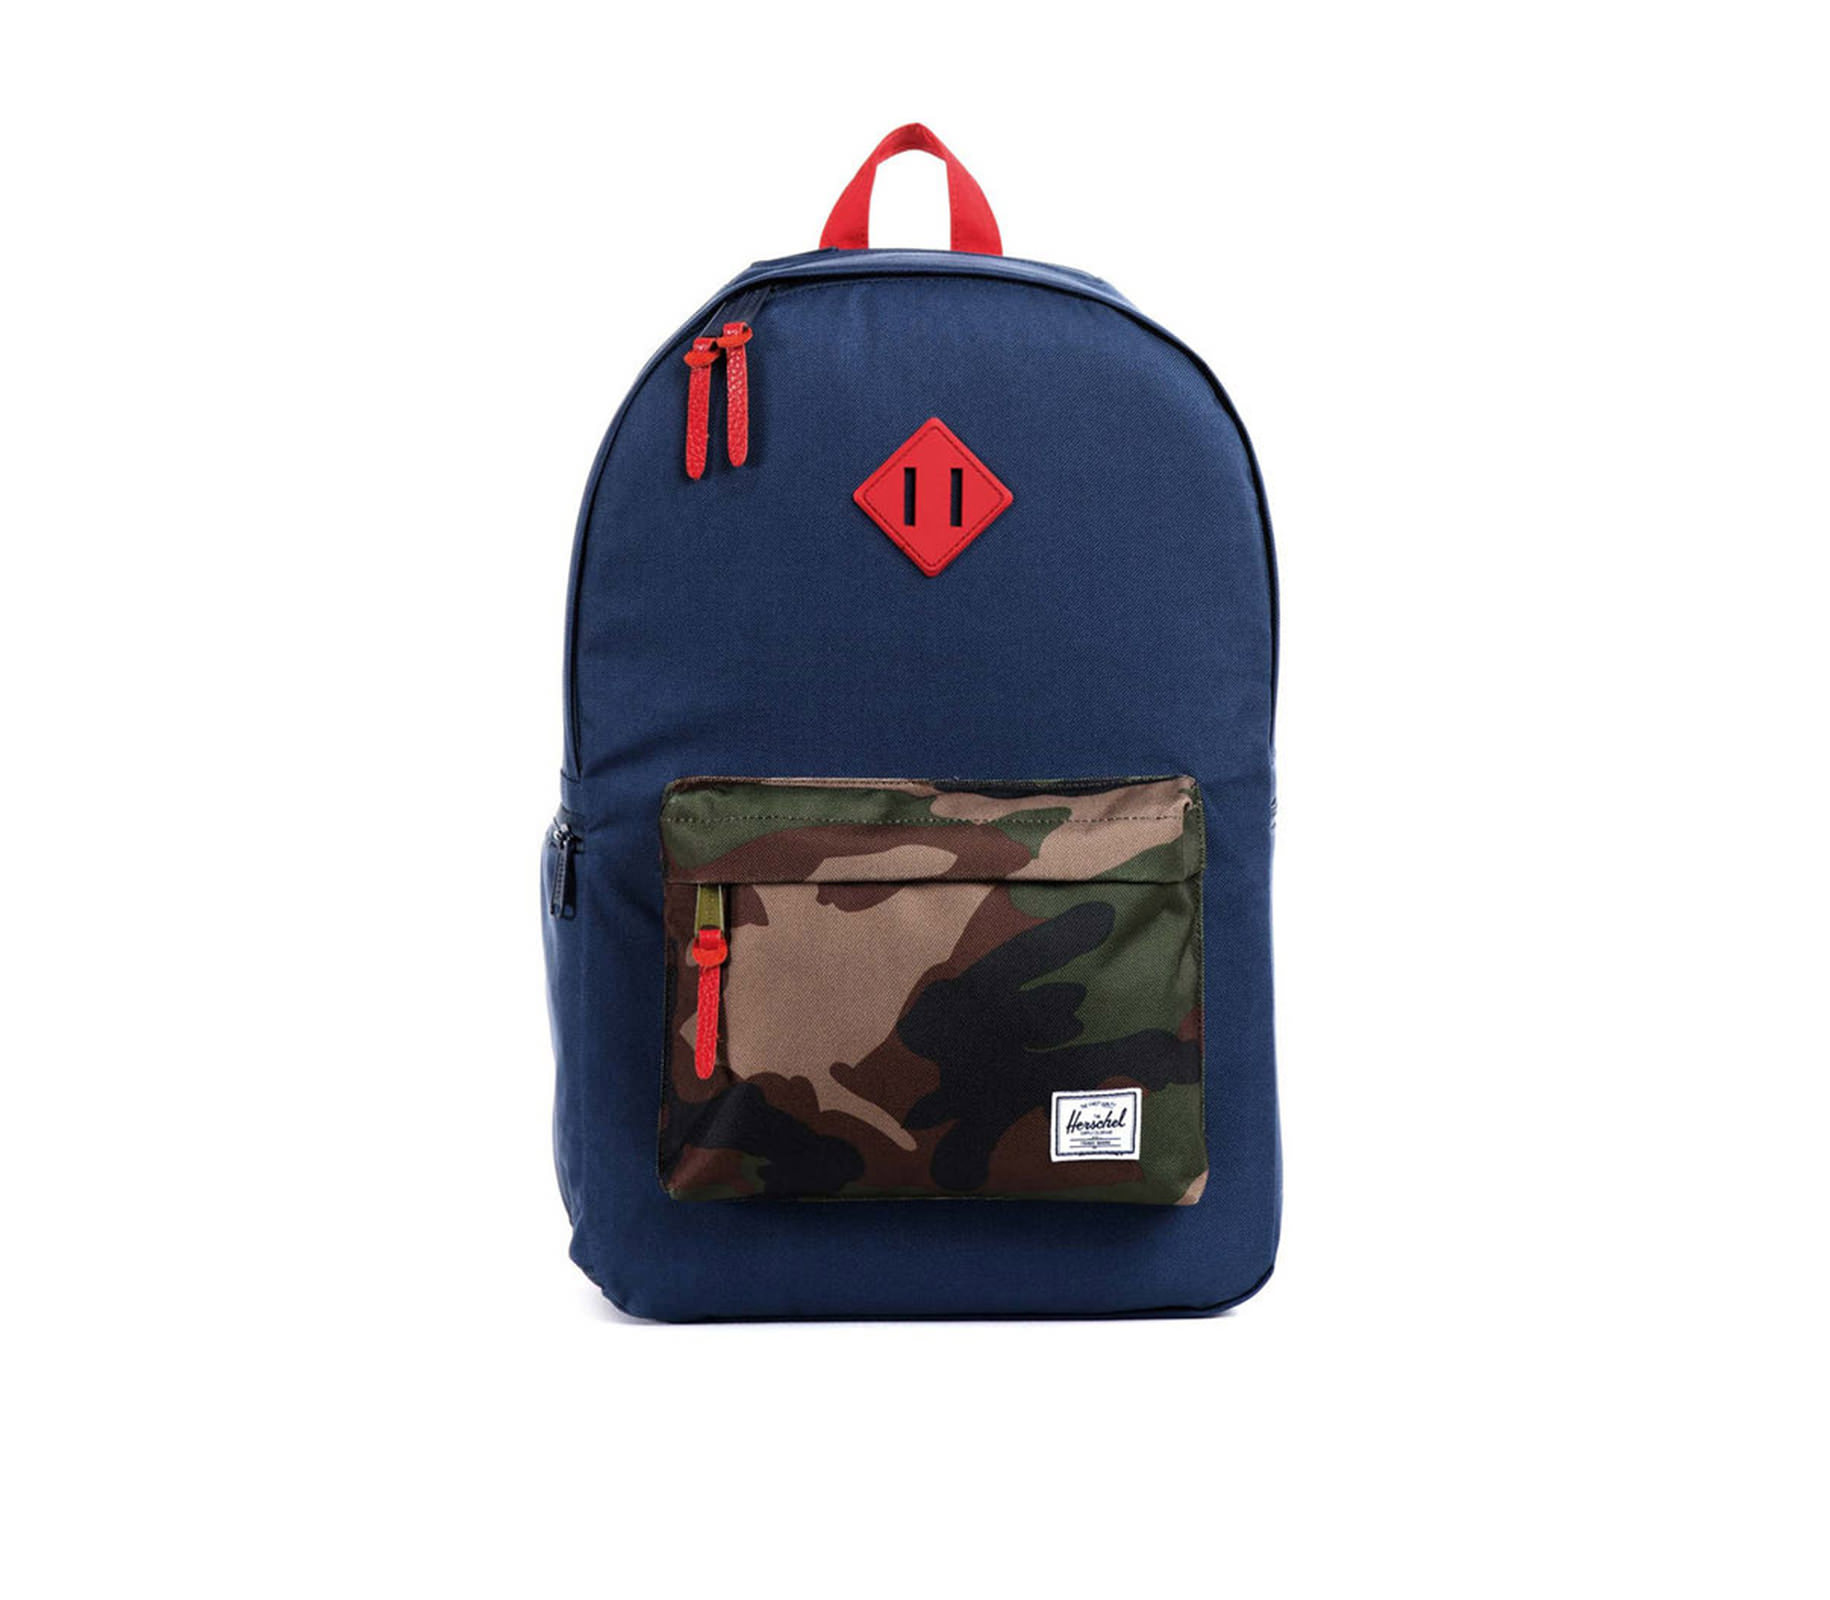 Balo du lịch HERSCHEL Heritage Plus Navy/Woodland Camo/Red Rubber